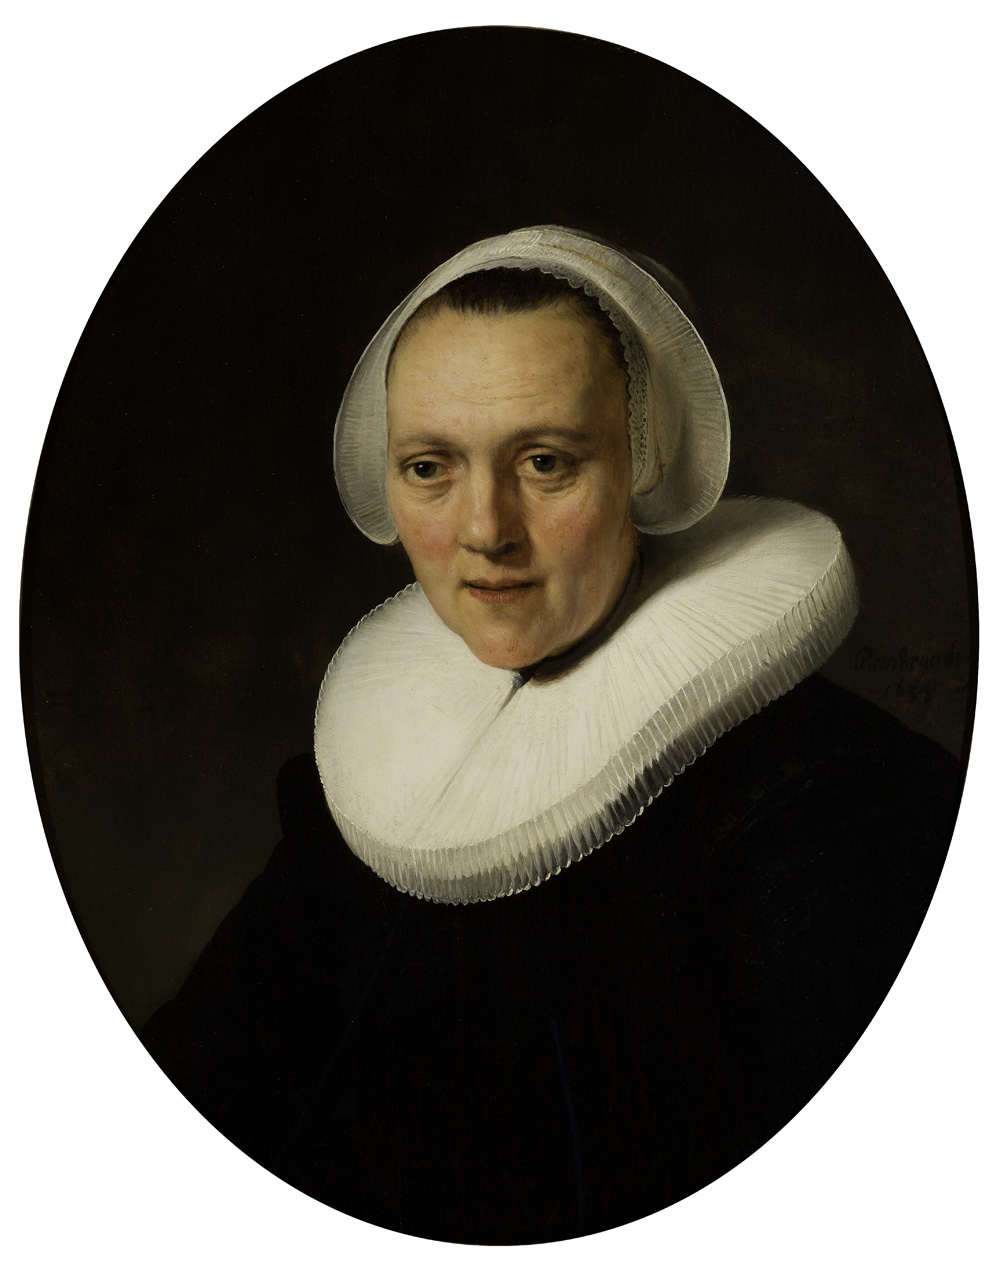 Rembrandt van Rijn | Dutch, 1606 – 1669 | Portrait of a Forty-Year-Old Woman, possibly Marretje Cornelisdr. Van Grotewal, 1634 | Oil on panel | Speed Museum | Purchased with funds contributed by individuals, corporations and the entire community of Louisville, as well as the Commonwealth of Kentucky Frame conservation funded by Edith and Jacob Horn, The Horn Foundation | 1977.16